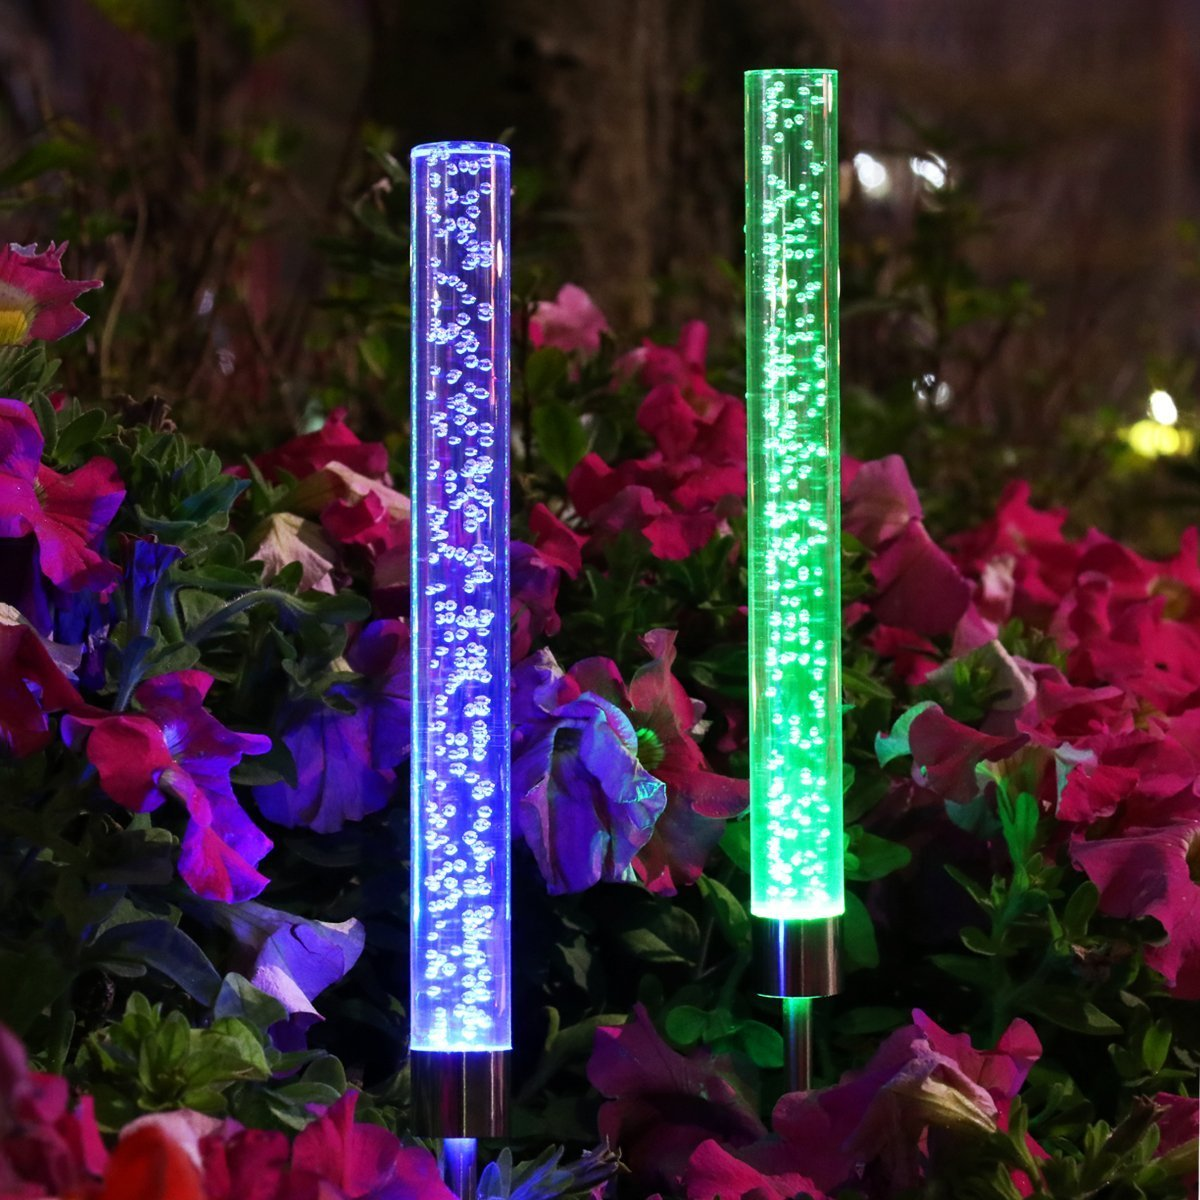 YUNLIGHTS 2pcs Garden Solar Lights Outdoor Solar Tube Lights Solar Acrylic Bubble RGB Color Changing Solar Powered Garden Stake Lights for Garden Patio Backyard Pathway Decoration